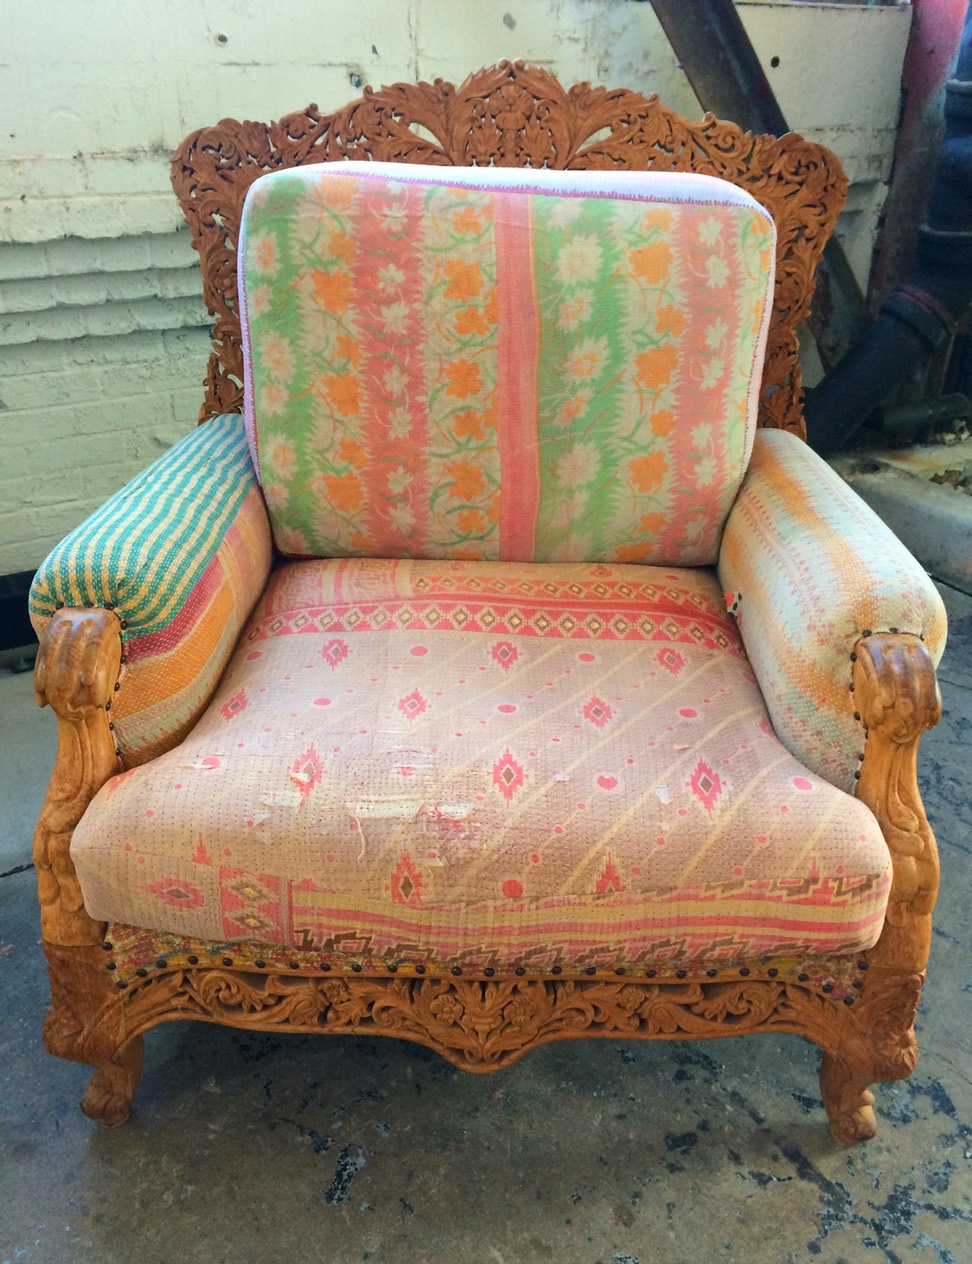 Gorgeous chair from Anthropologie's Lobby